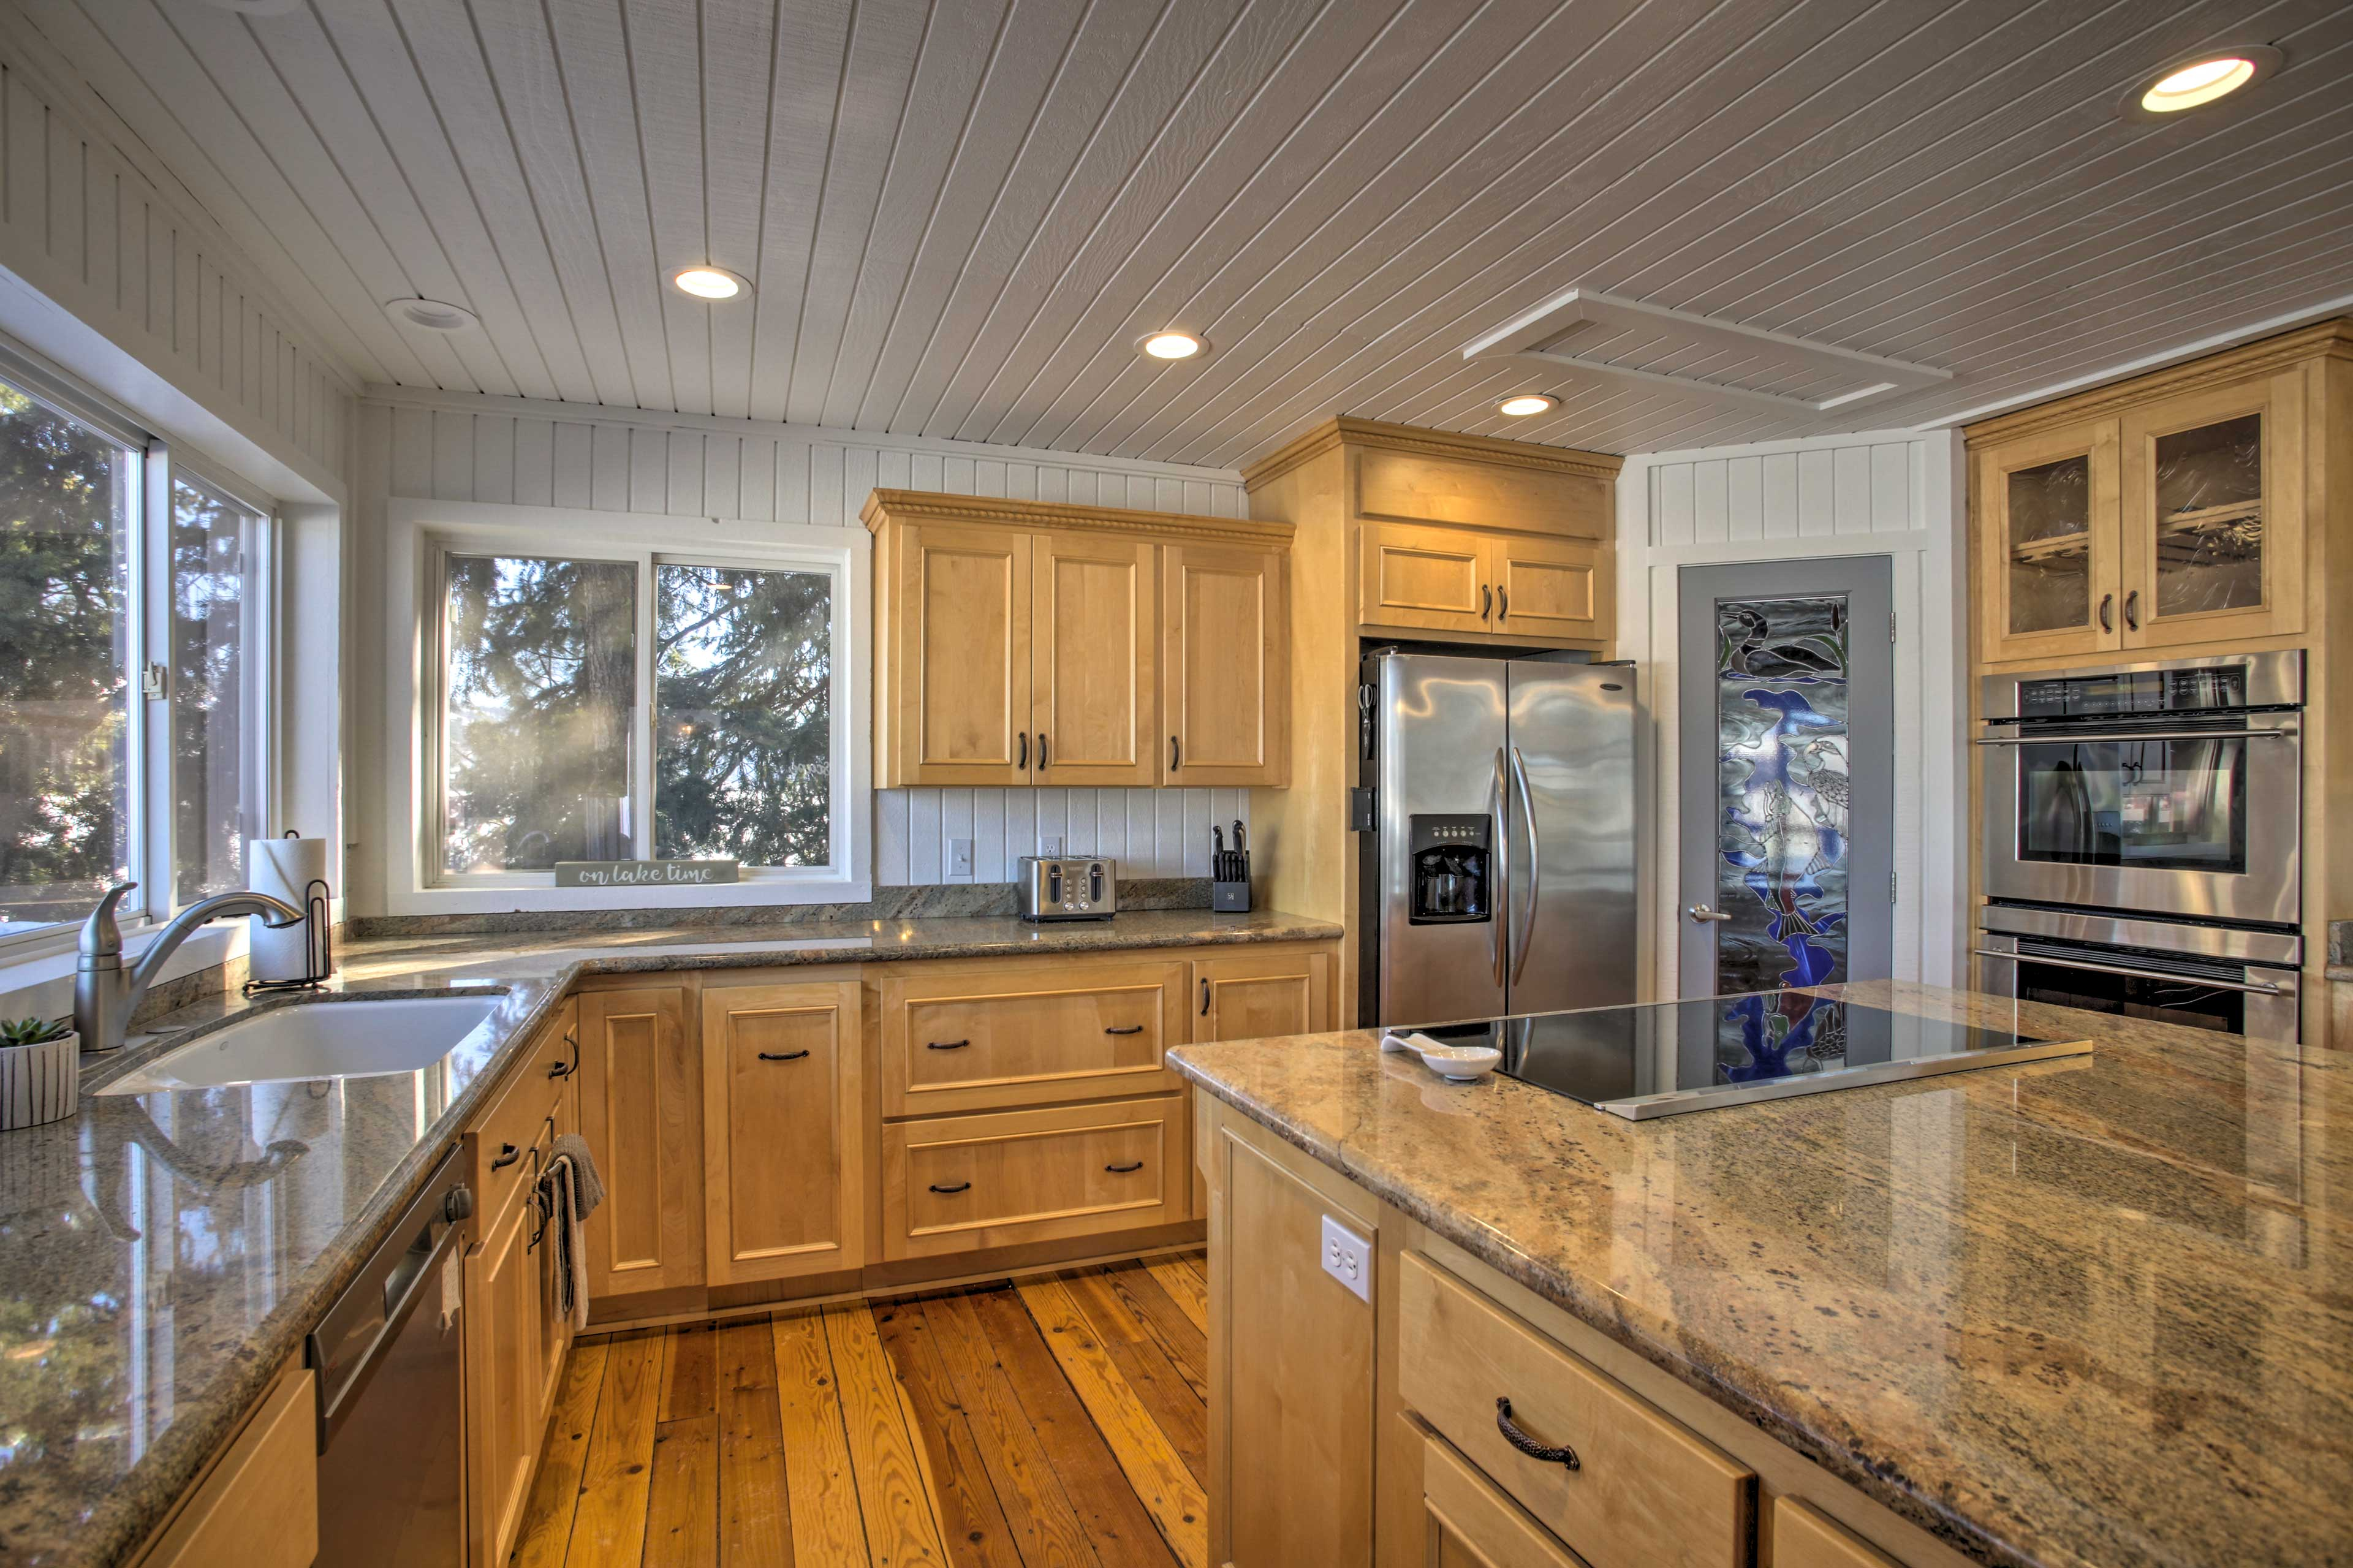 Cooking for a crowd is effortless in this fully equipped kitchen.